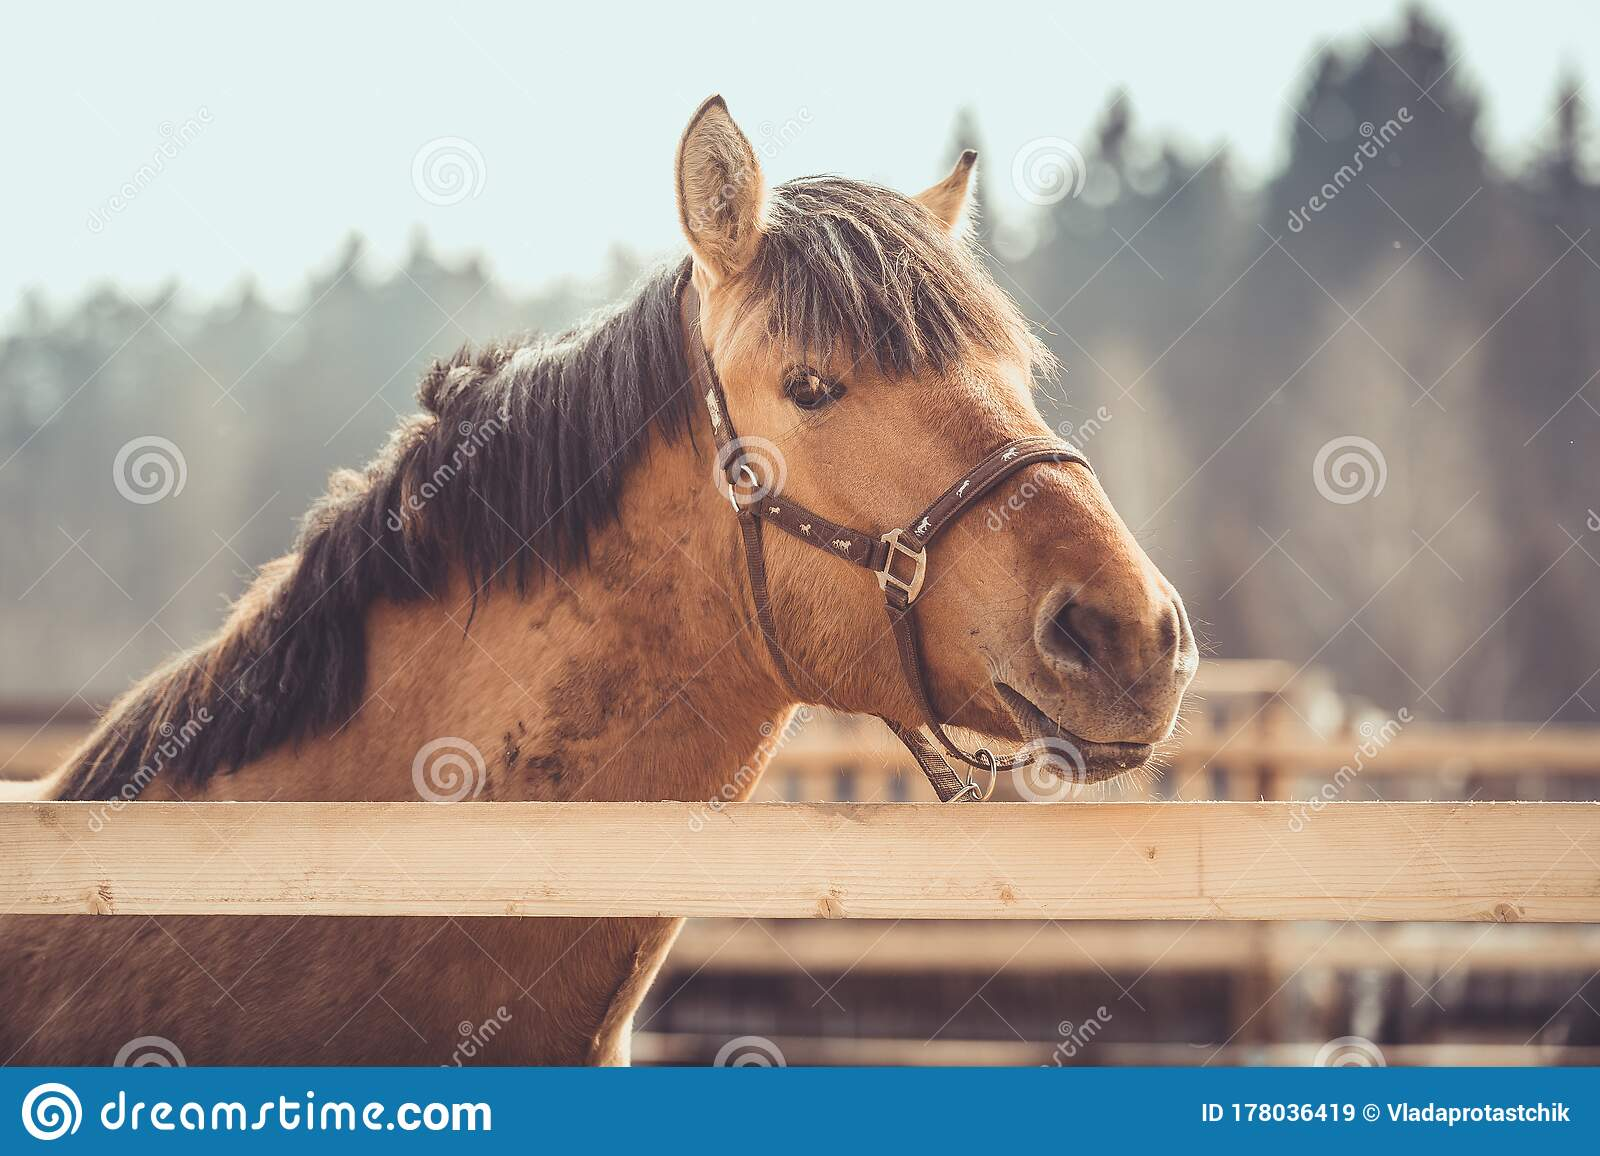 Young Buckskin Draft Horse In Halter On Paddock In Daytime Stock Image Image Of Draft Horses 178036419